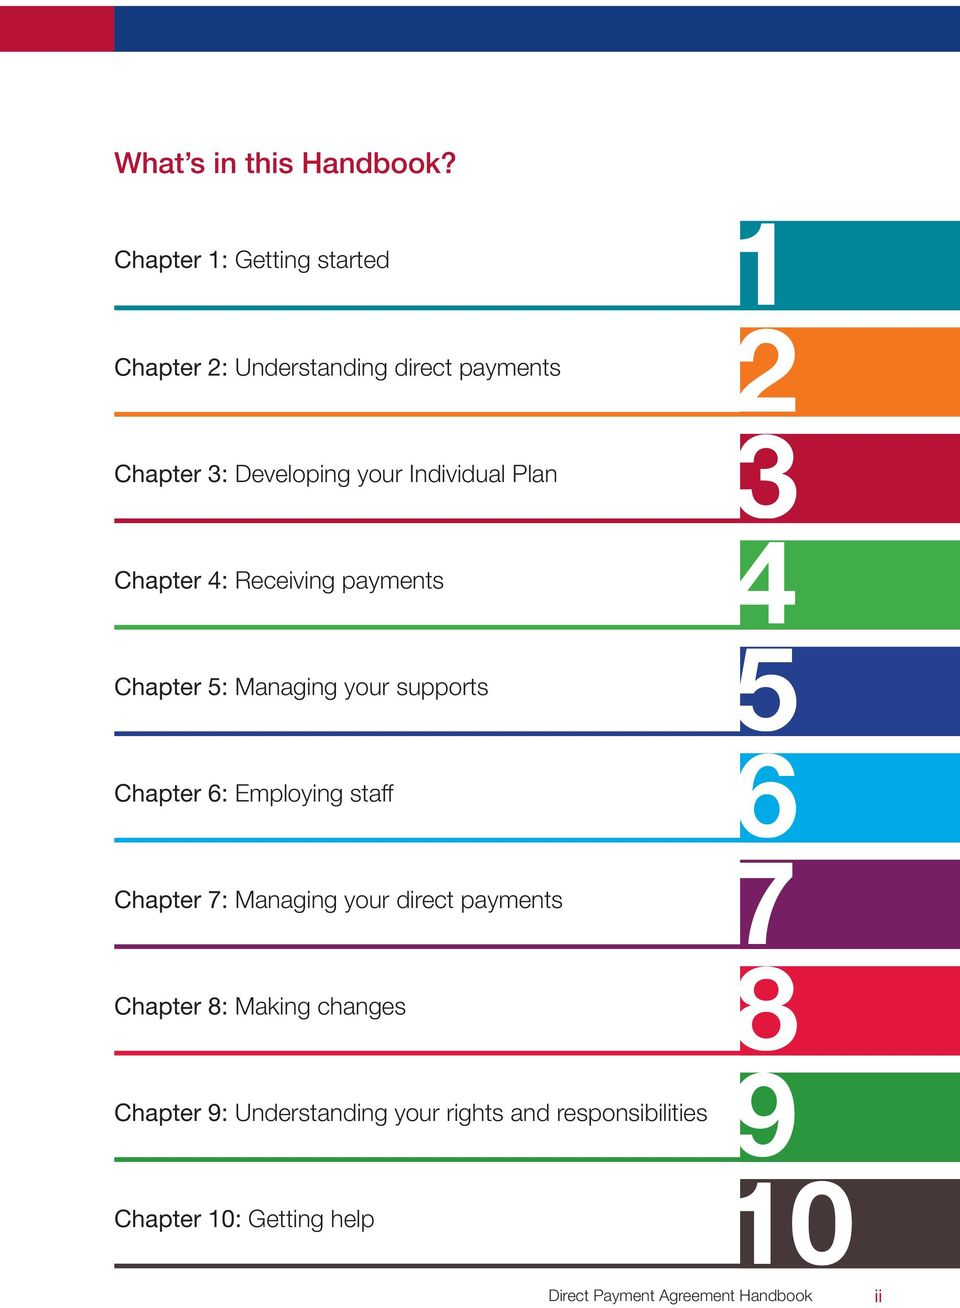 Individual Plan 3 Chapter 4: Receiving payments 4 Chapter 5: Managing your supports 5 Chapter 6: Employing